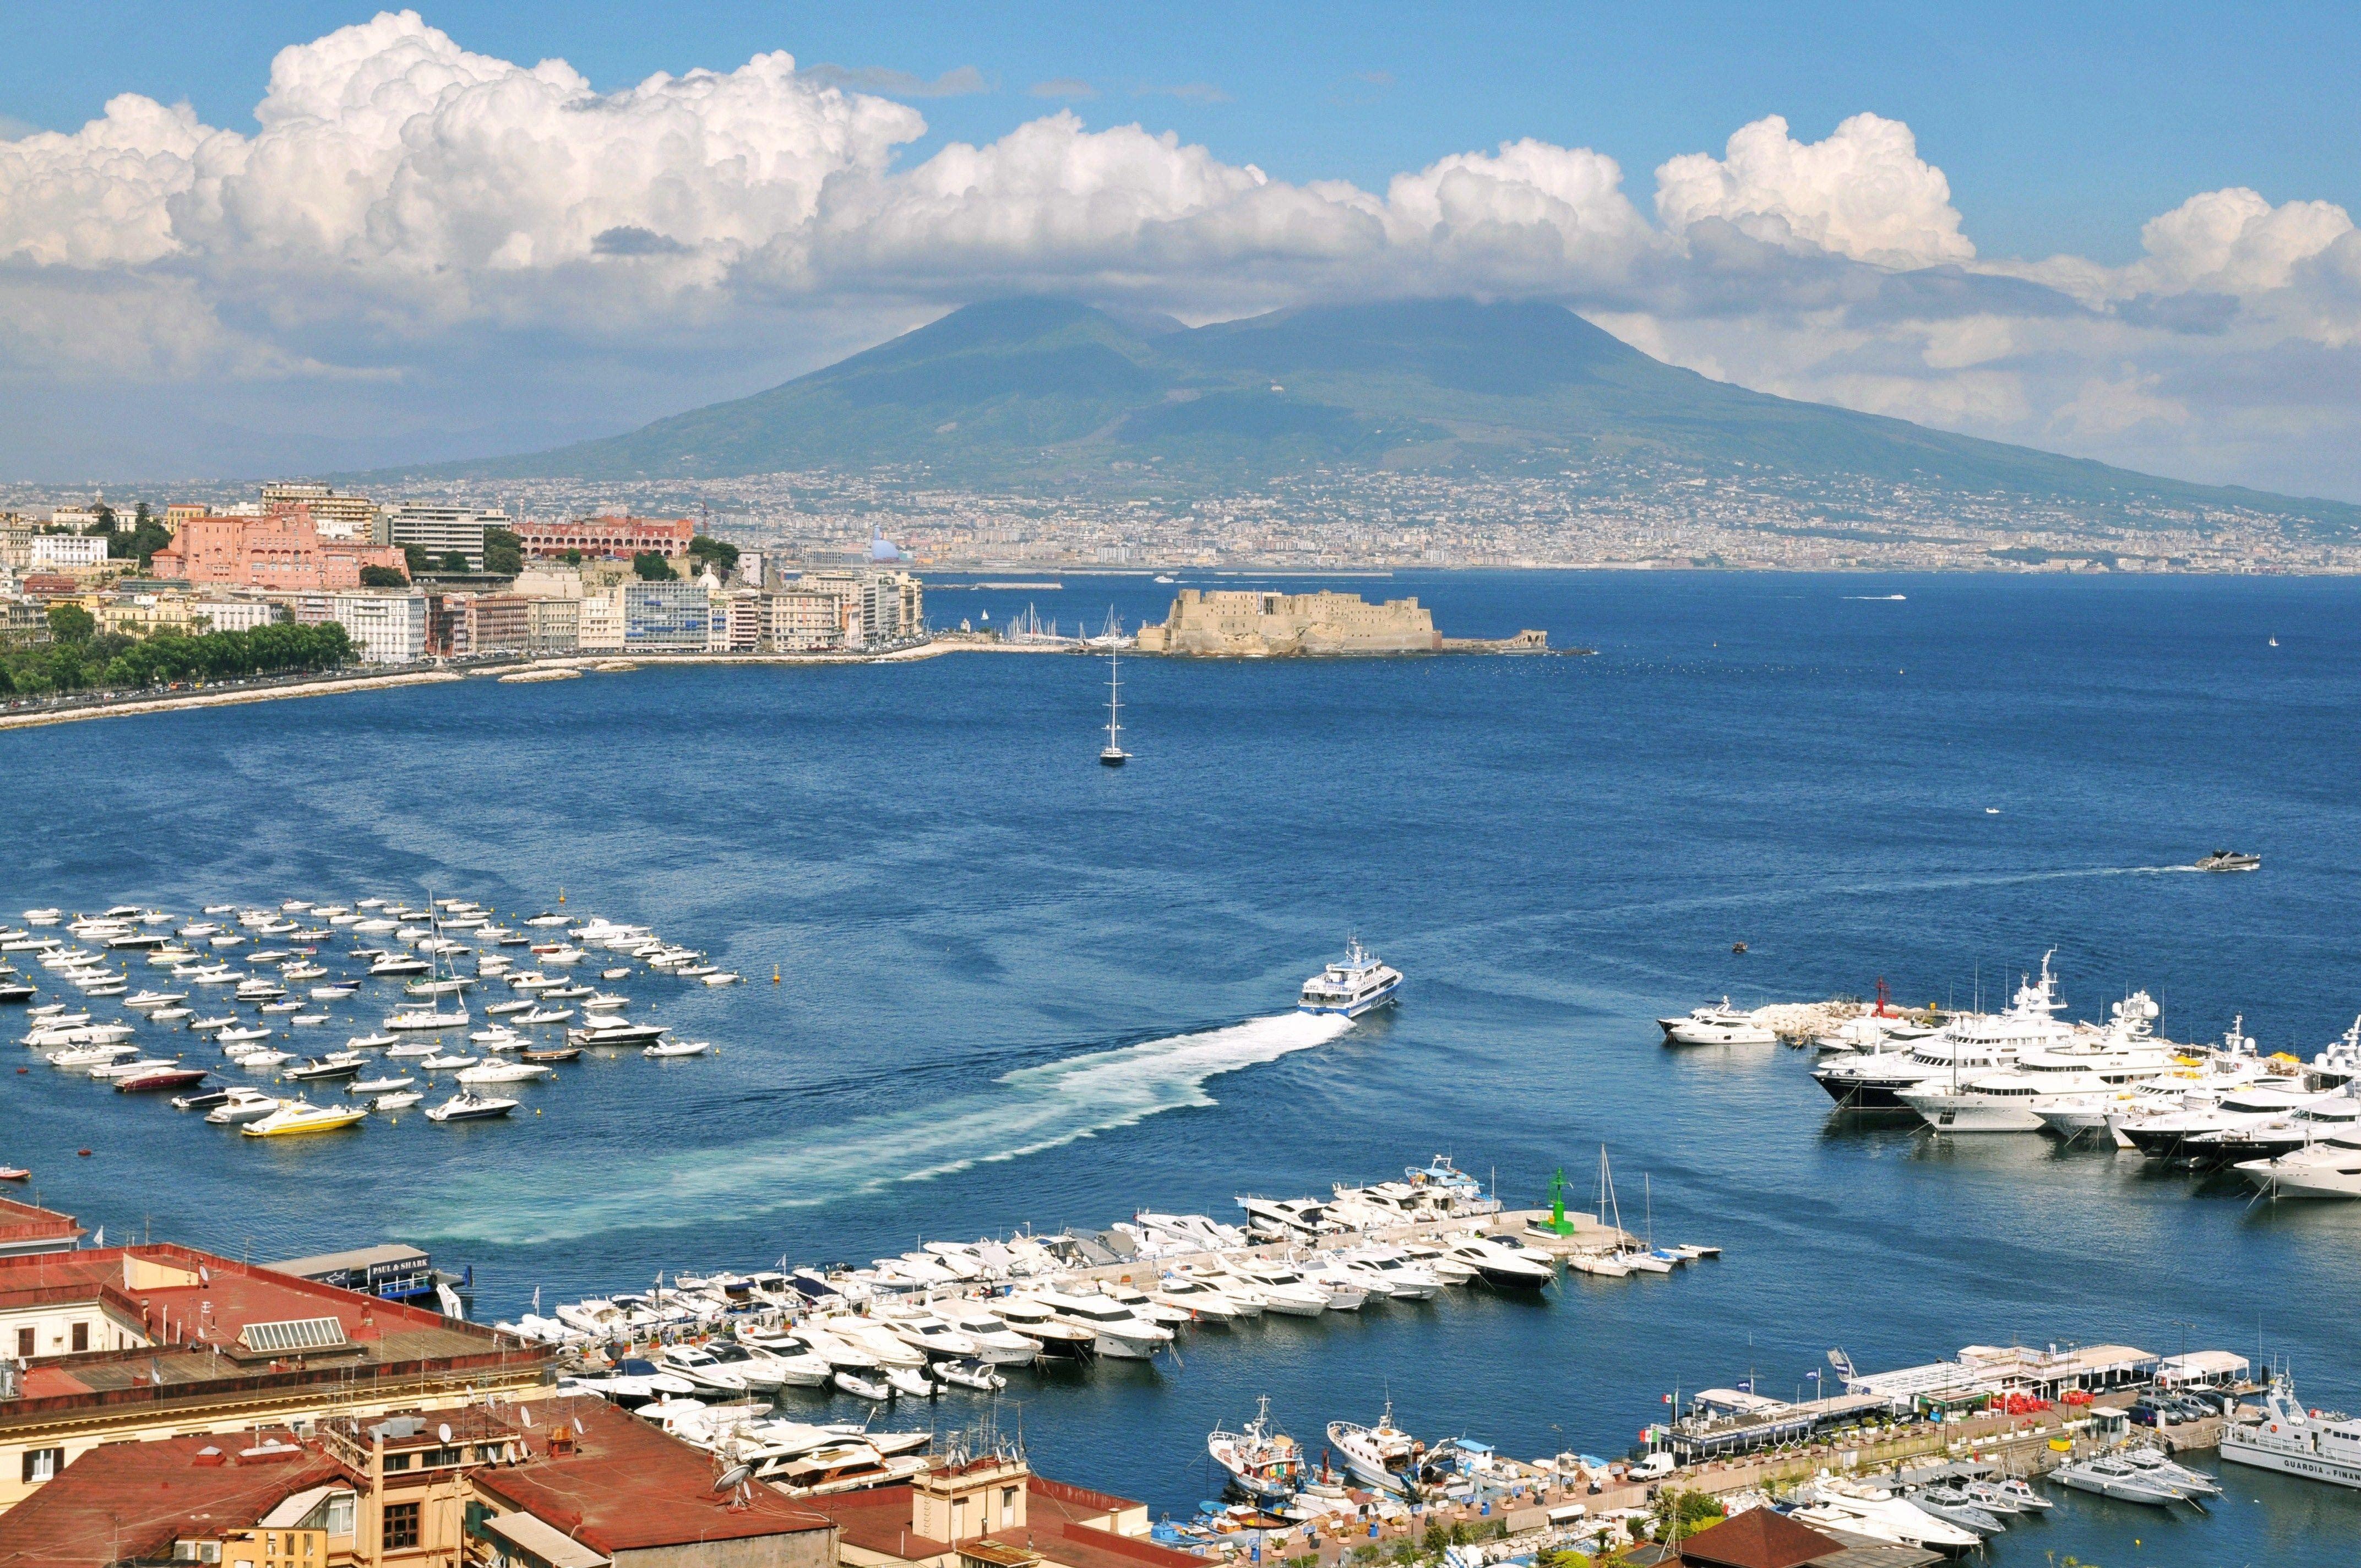 Port in Naples, Italy wallpapers and images - wallpapers, pictures ...